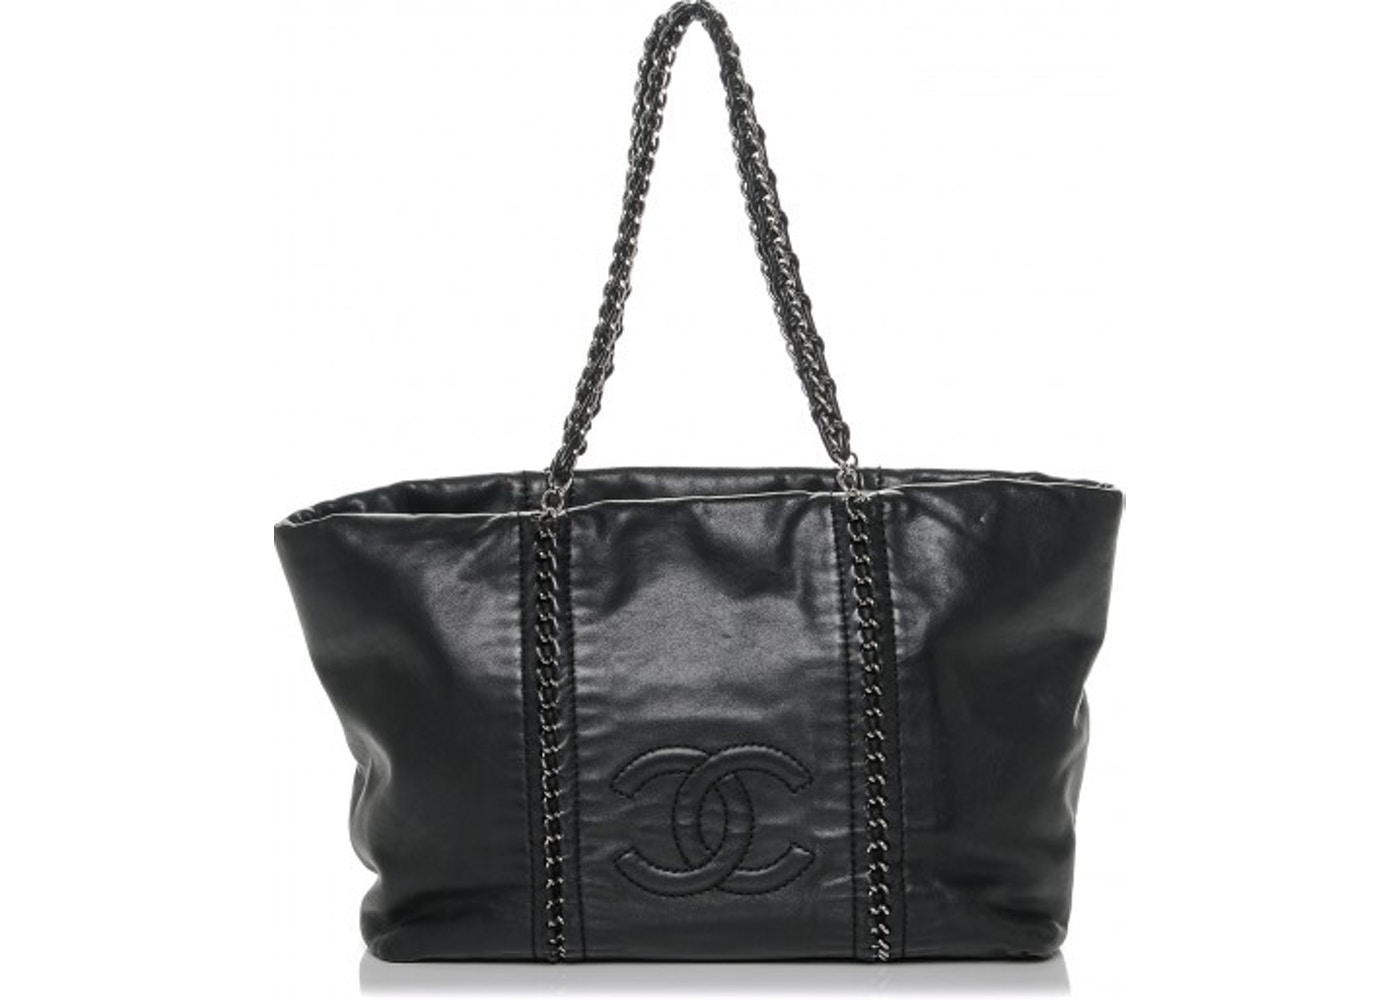 44f53d472f892f Chanel Tote Luxe Ligne Smooth Black